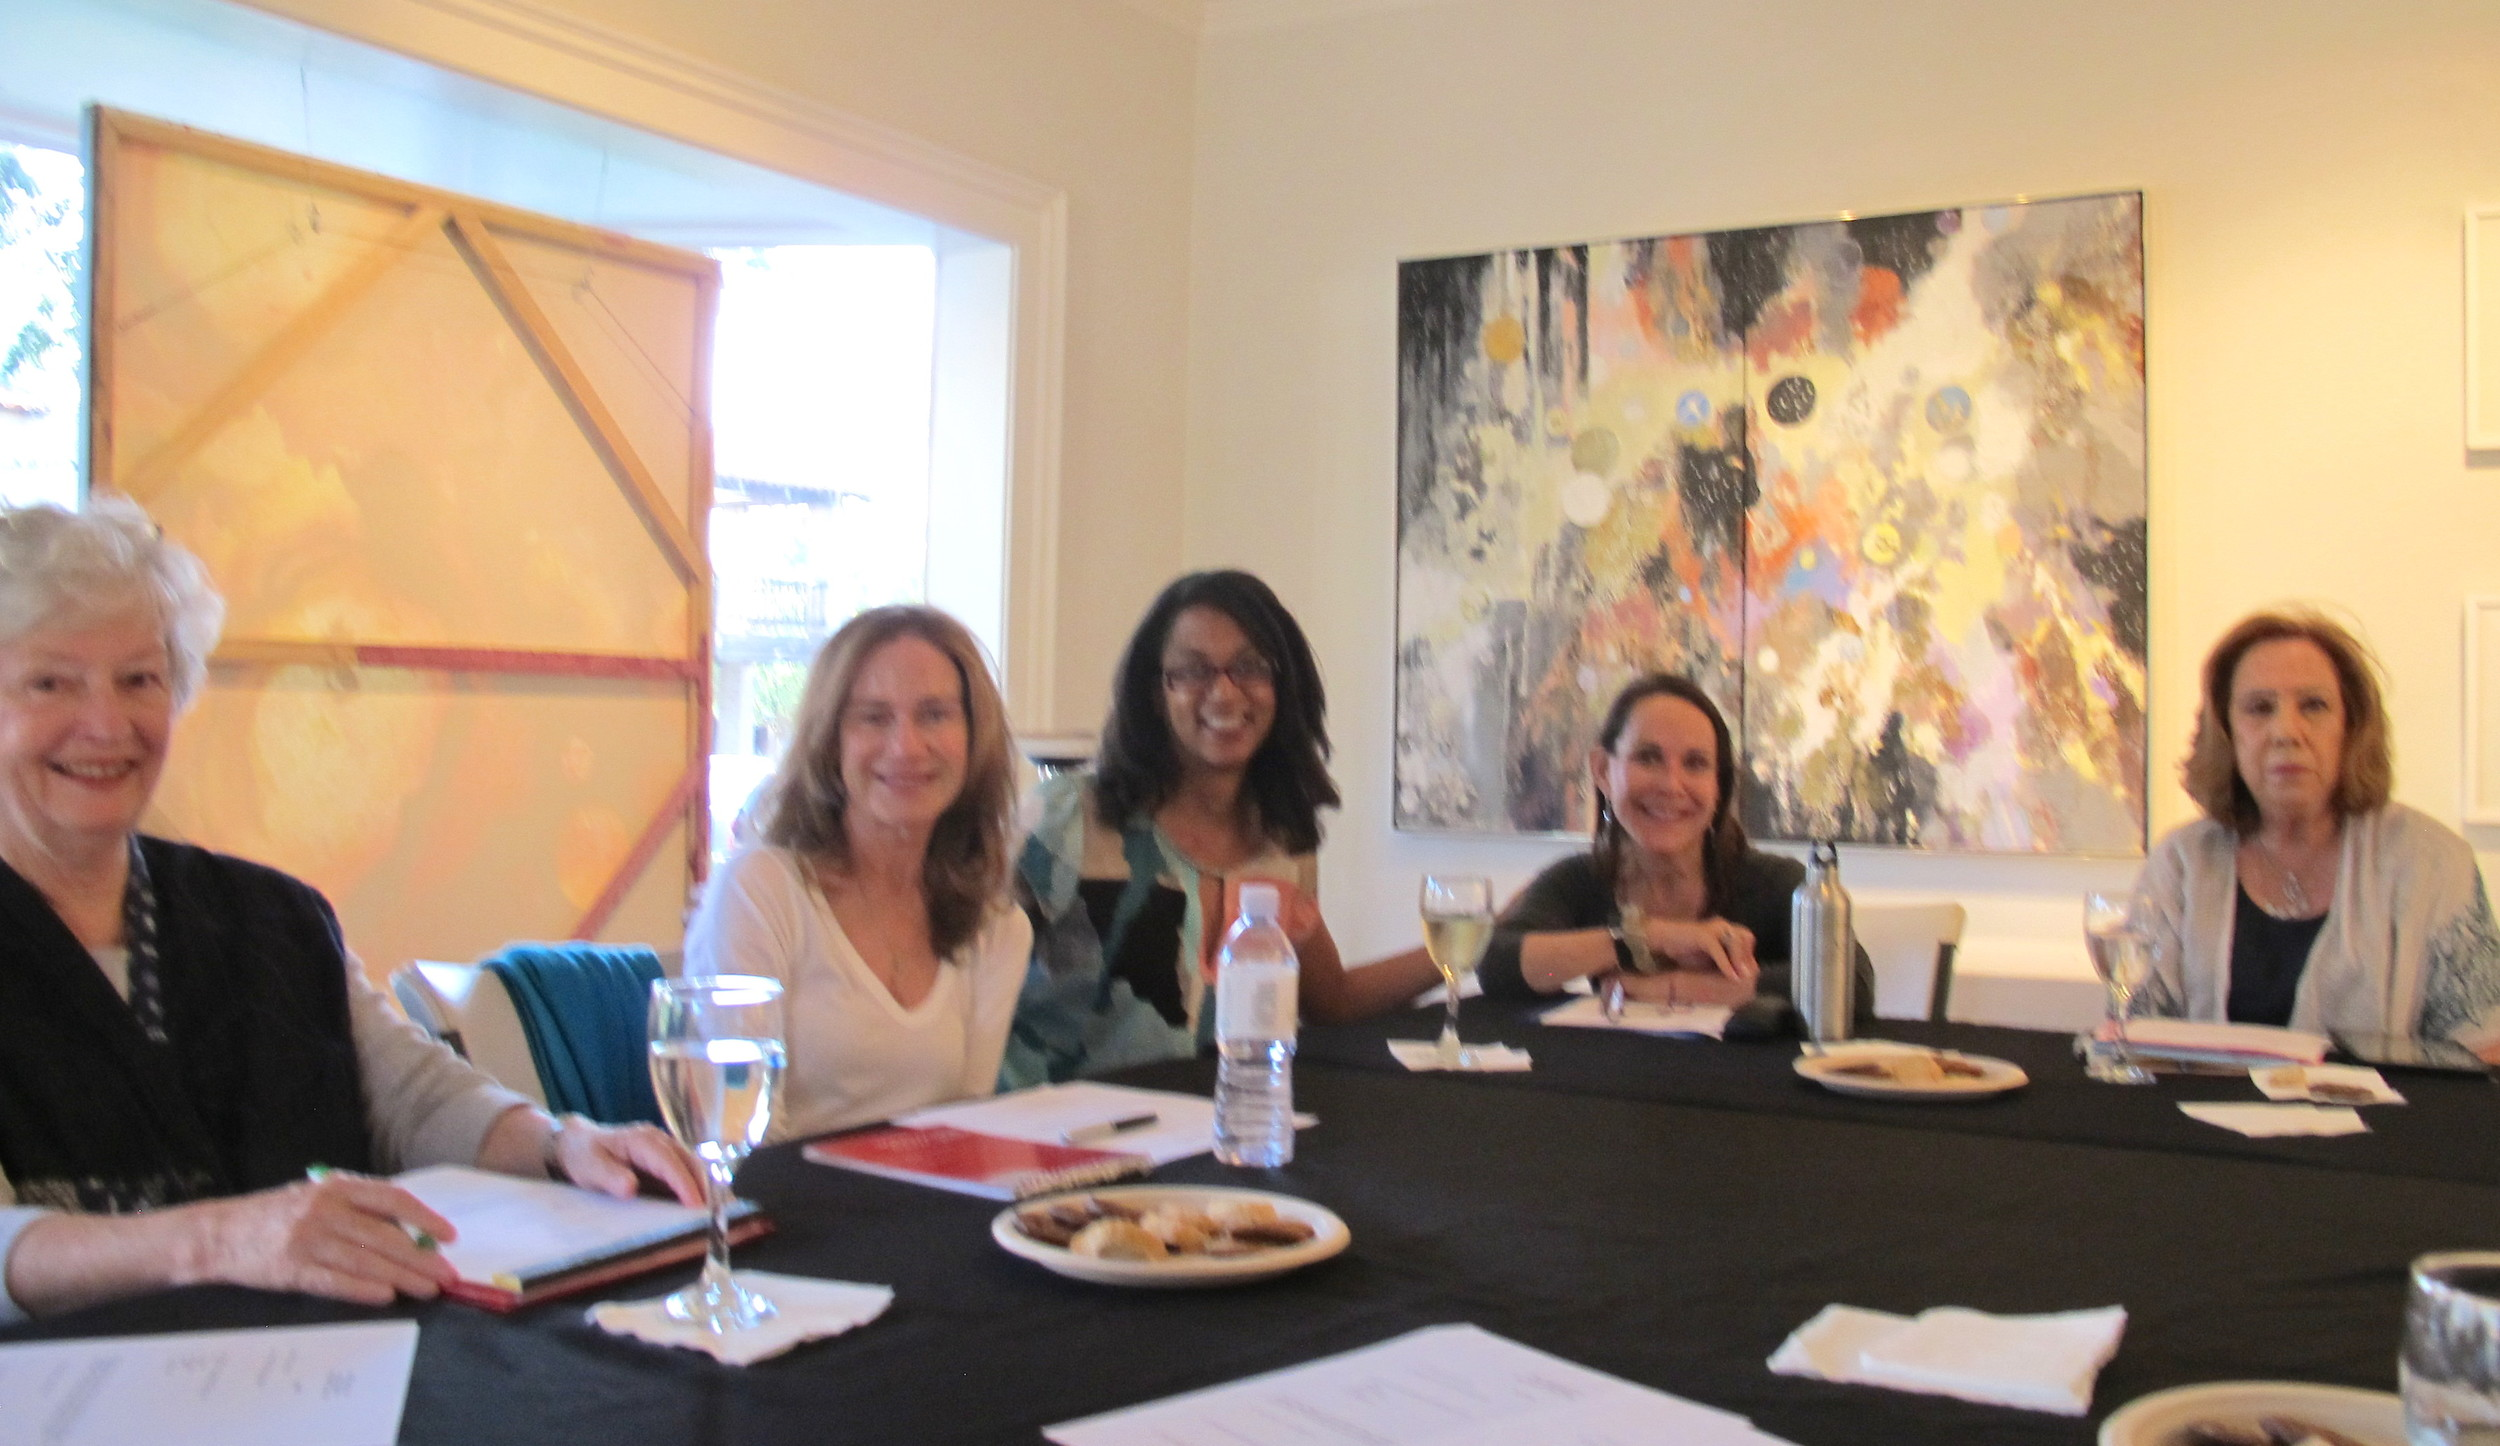 The Ojai Women's Fund Grants Committee met at the Porch Gallery in May to review the 2016 grant applications.